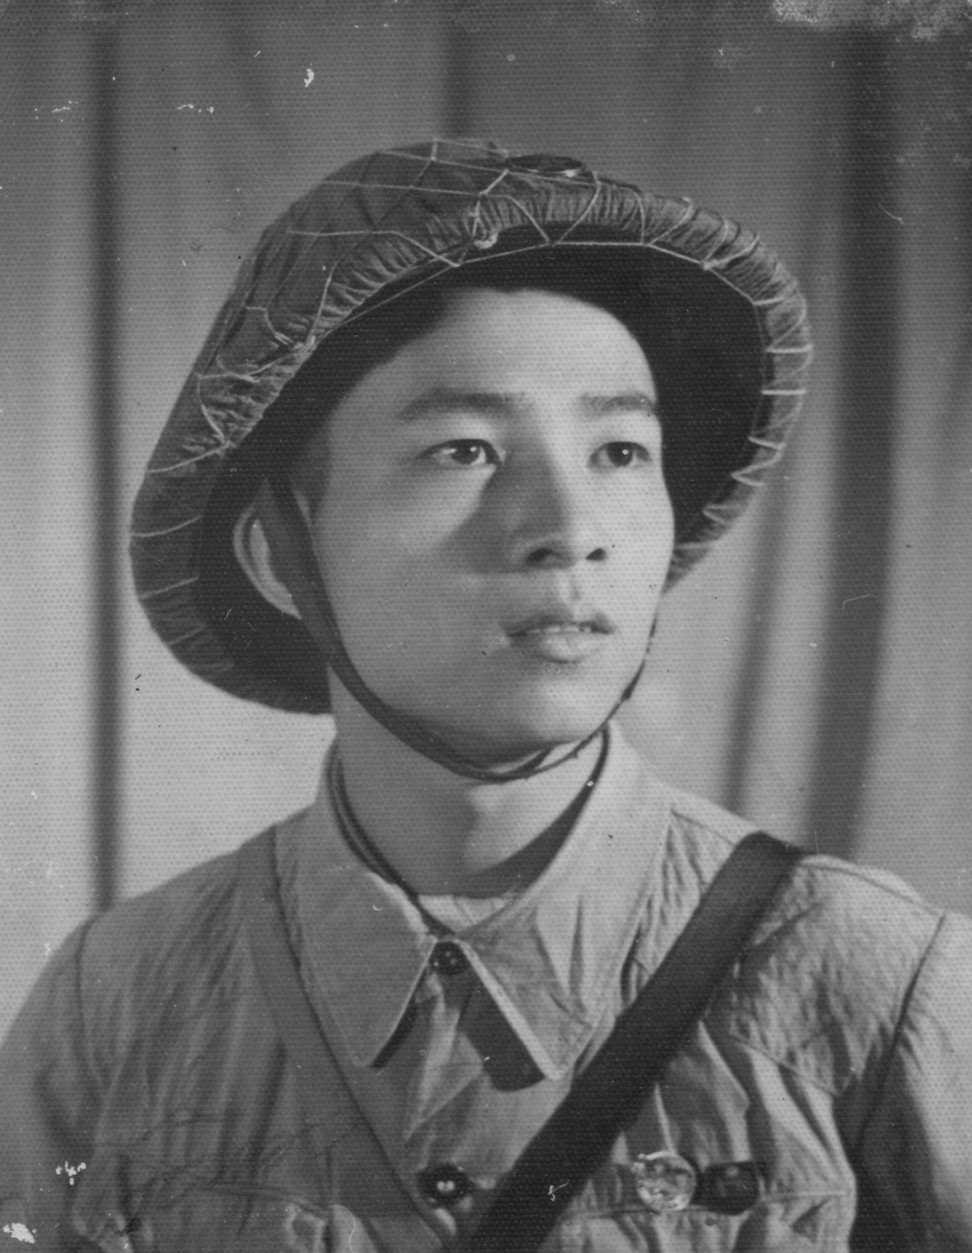 Military portrait of Tam in Hai Phong in 1959. Image: Witness Collection / Pham Thanh Tam